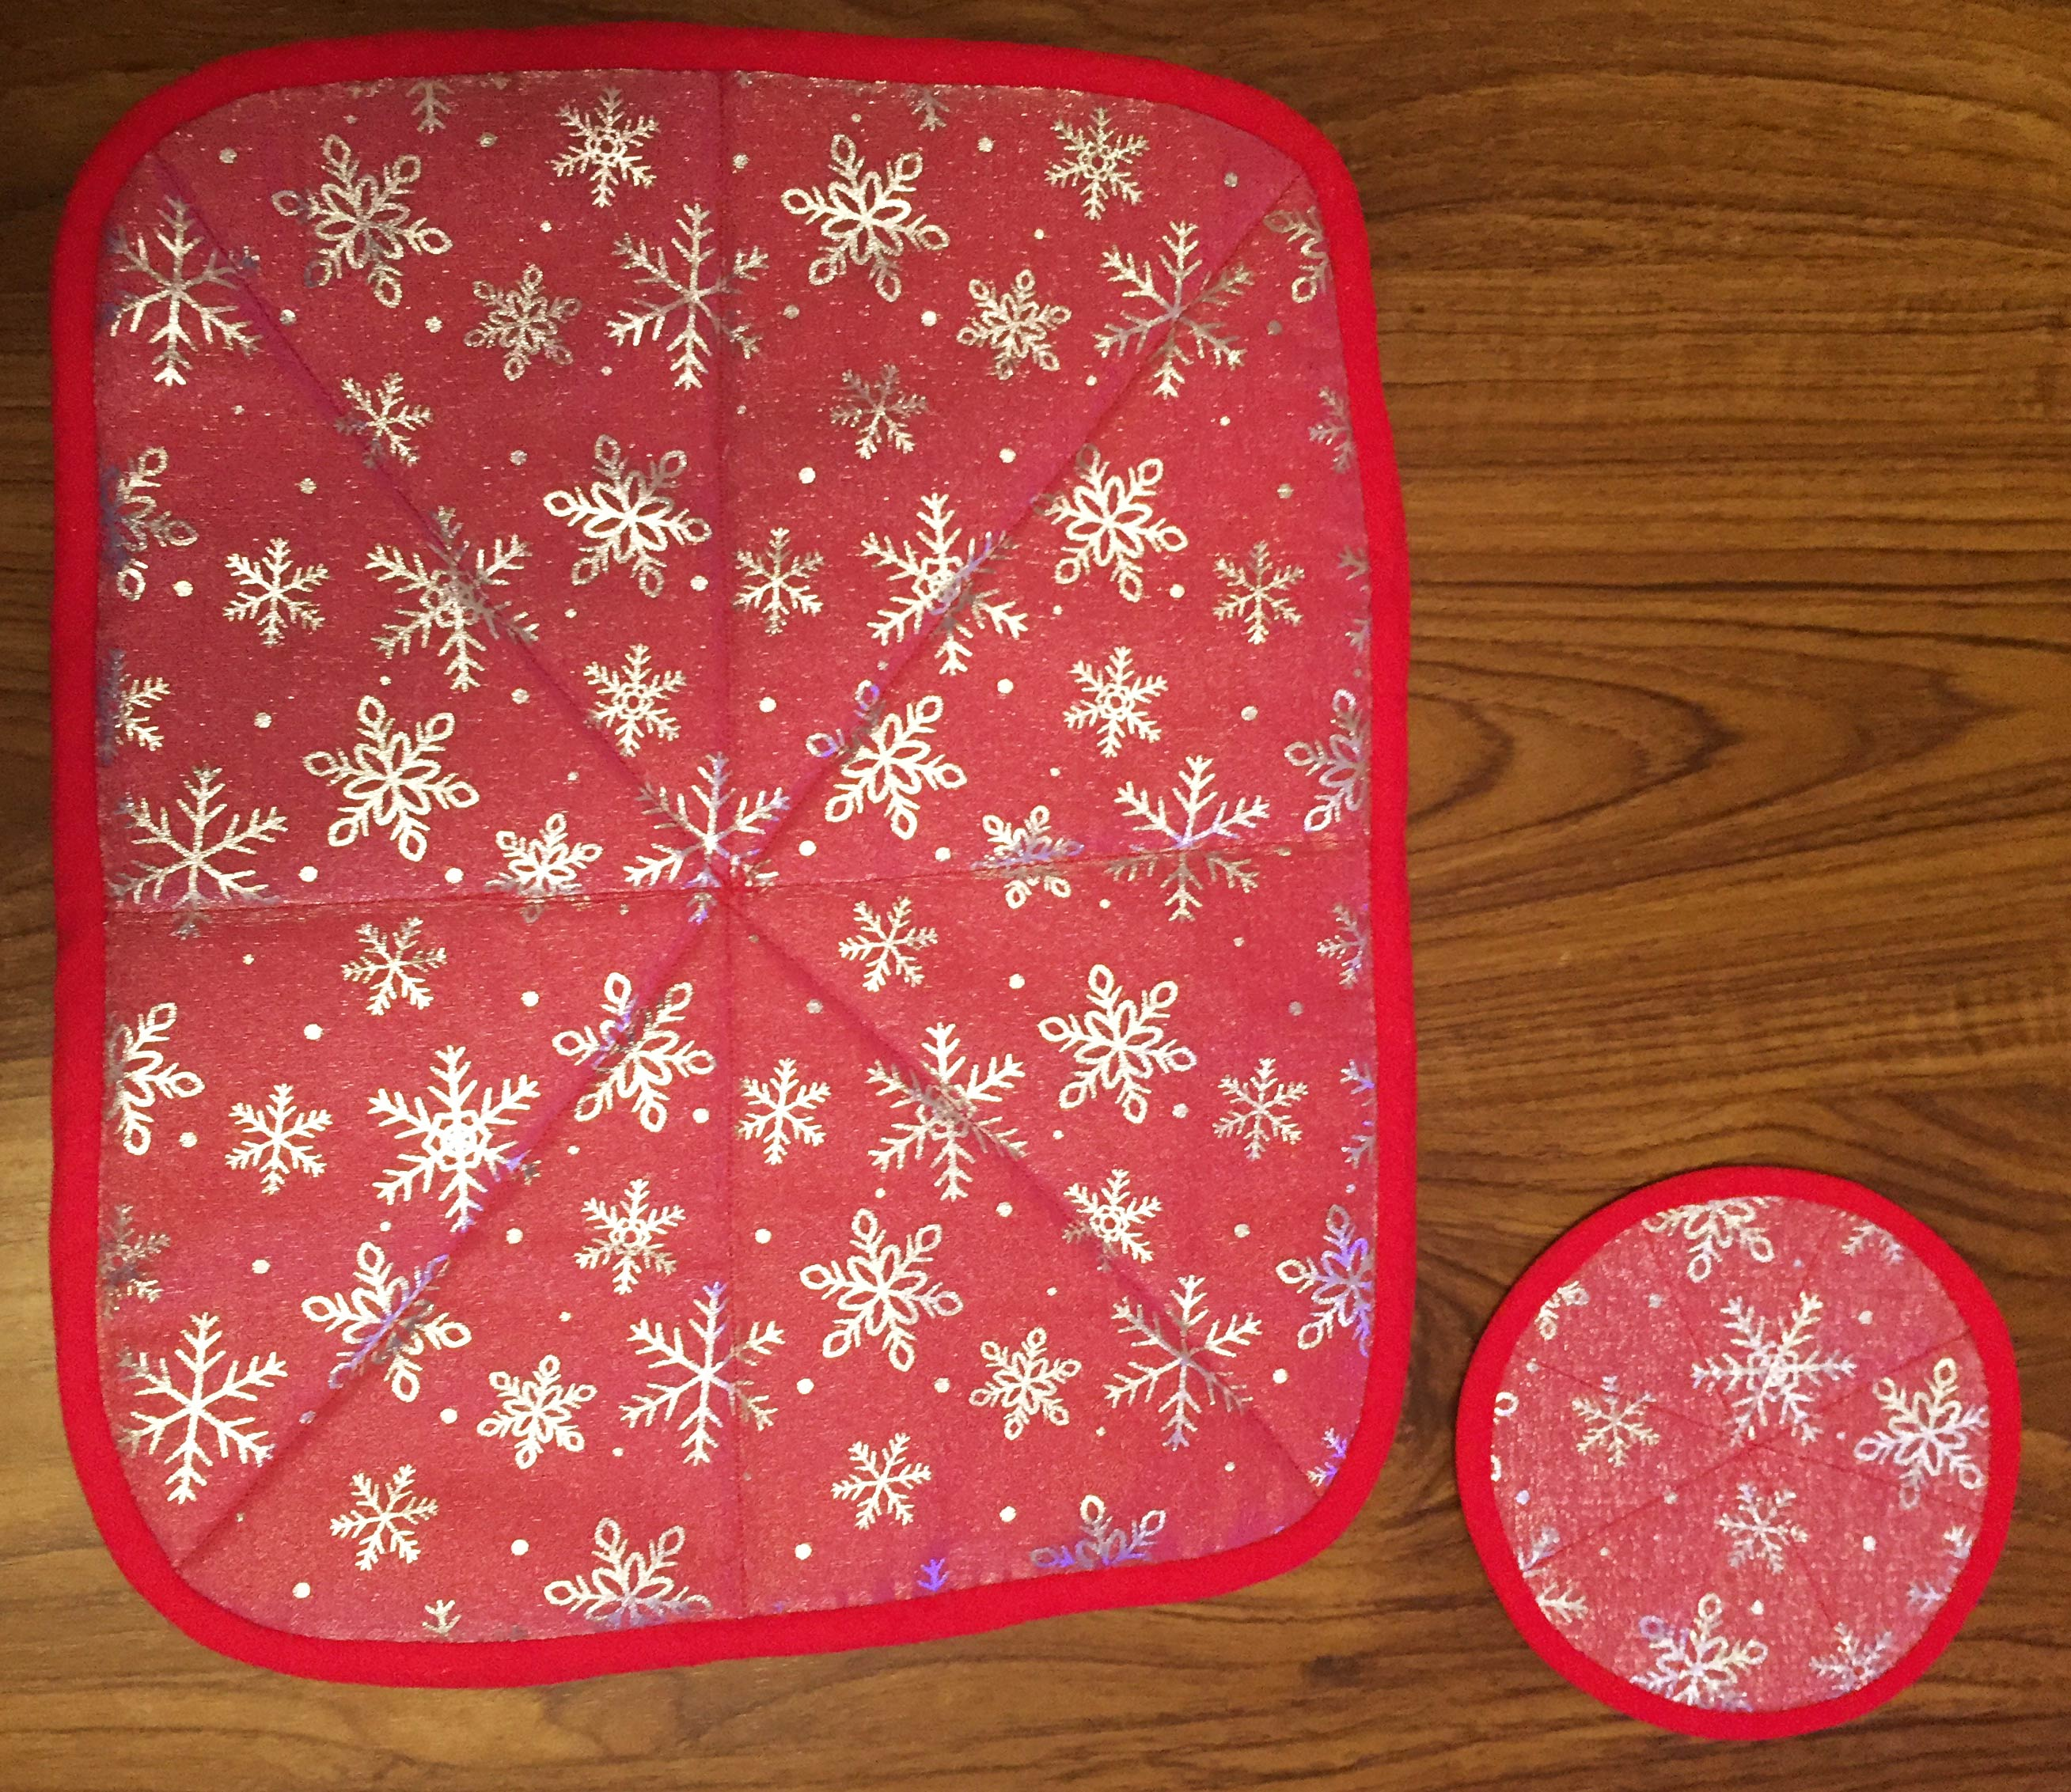 snowflake-table-mat-and-coaster